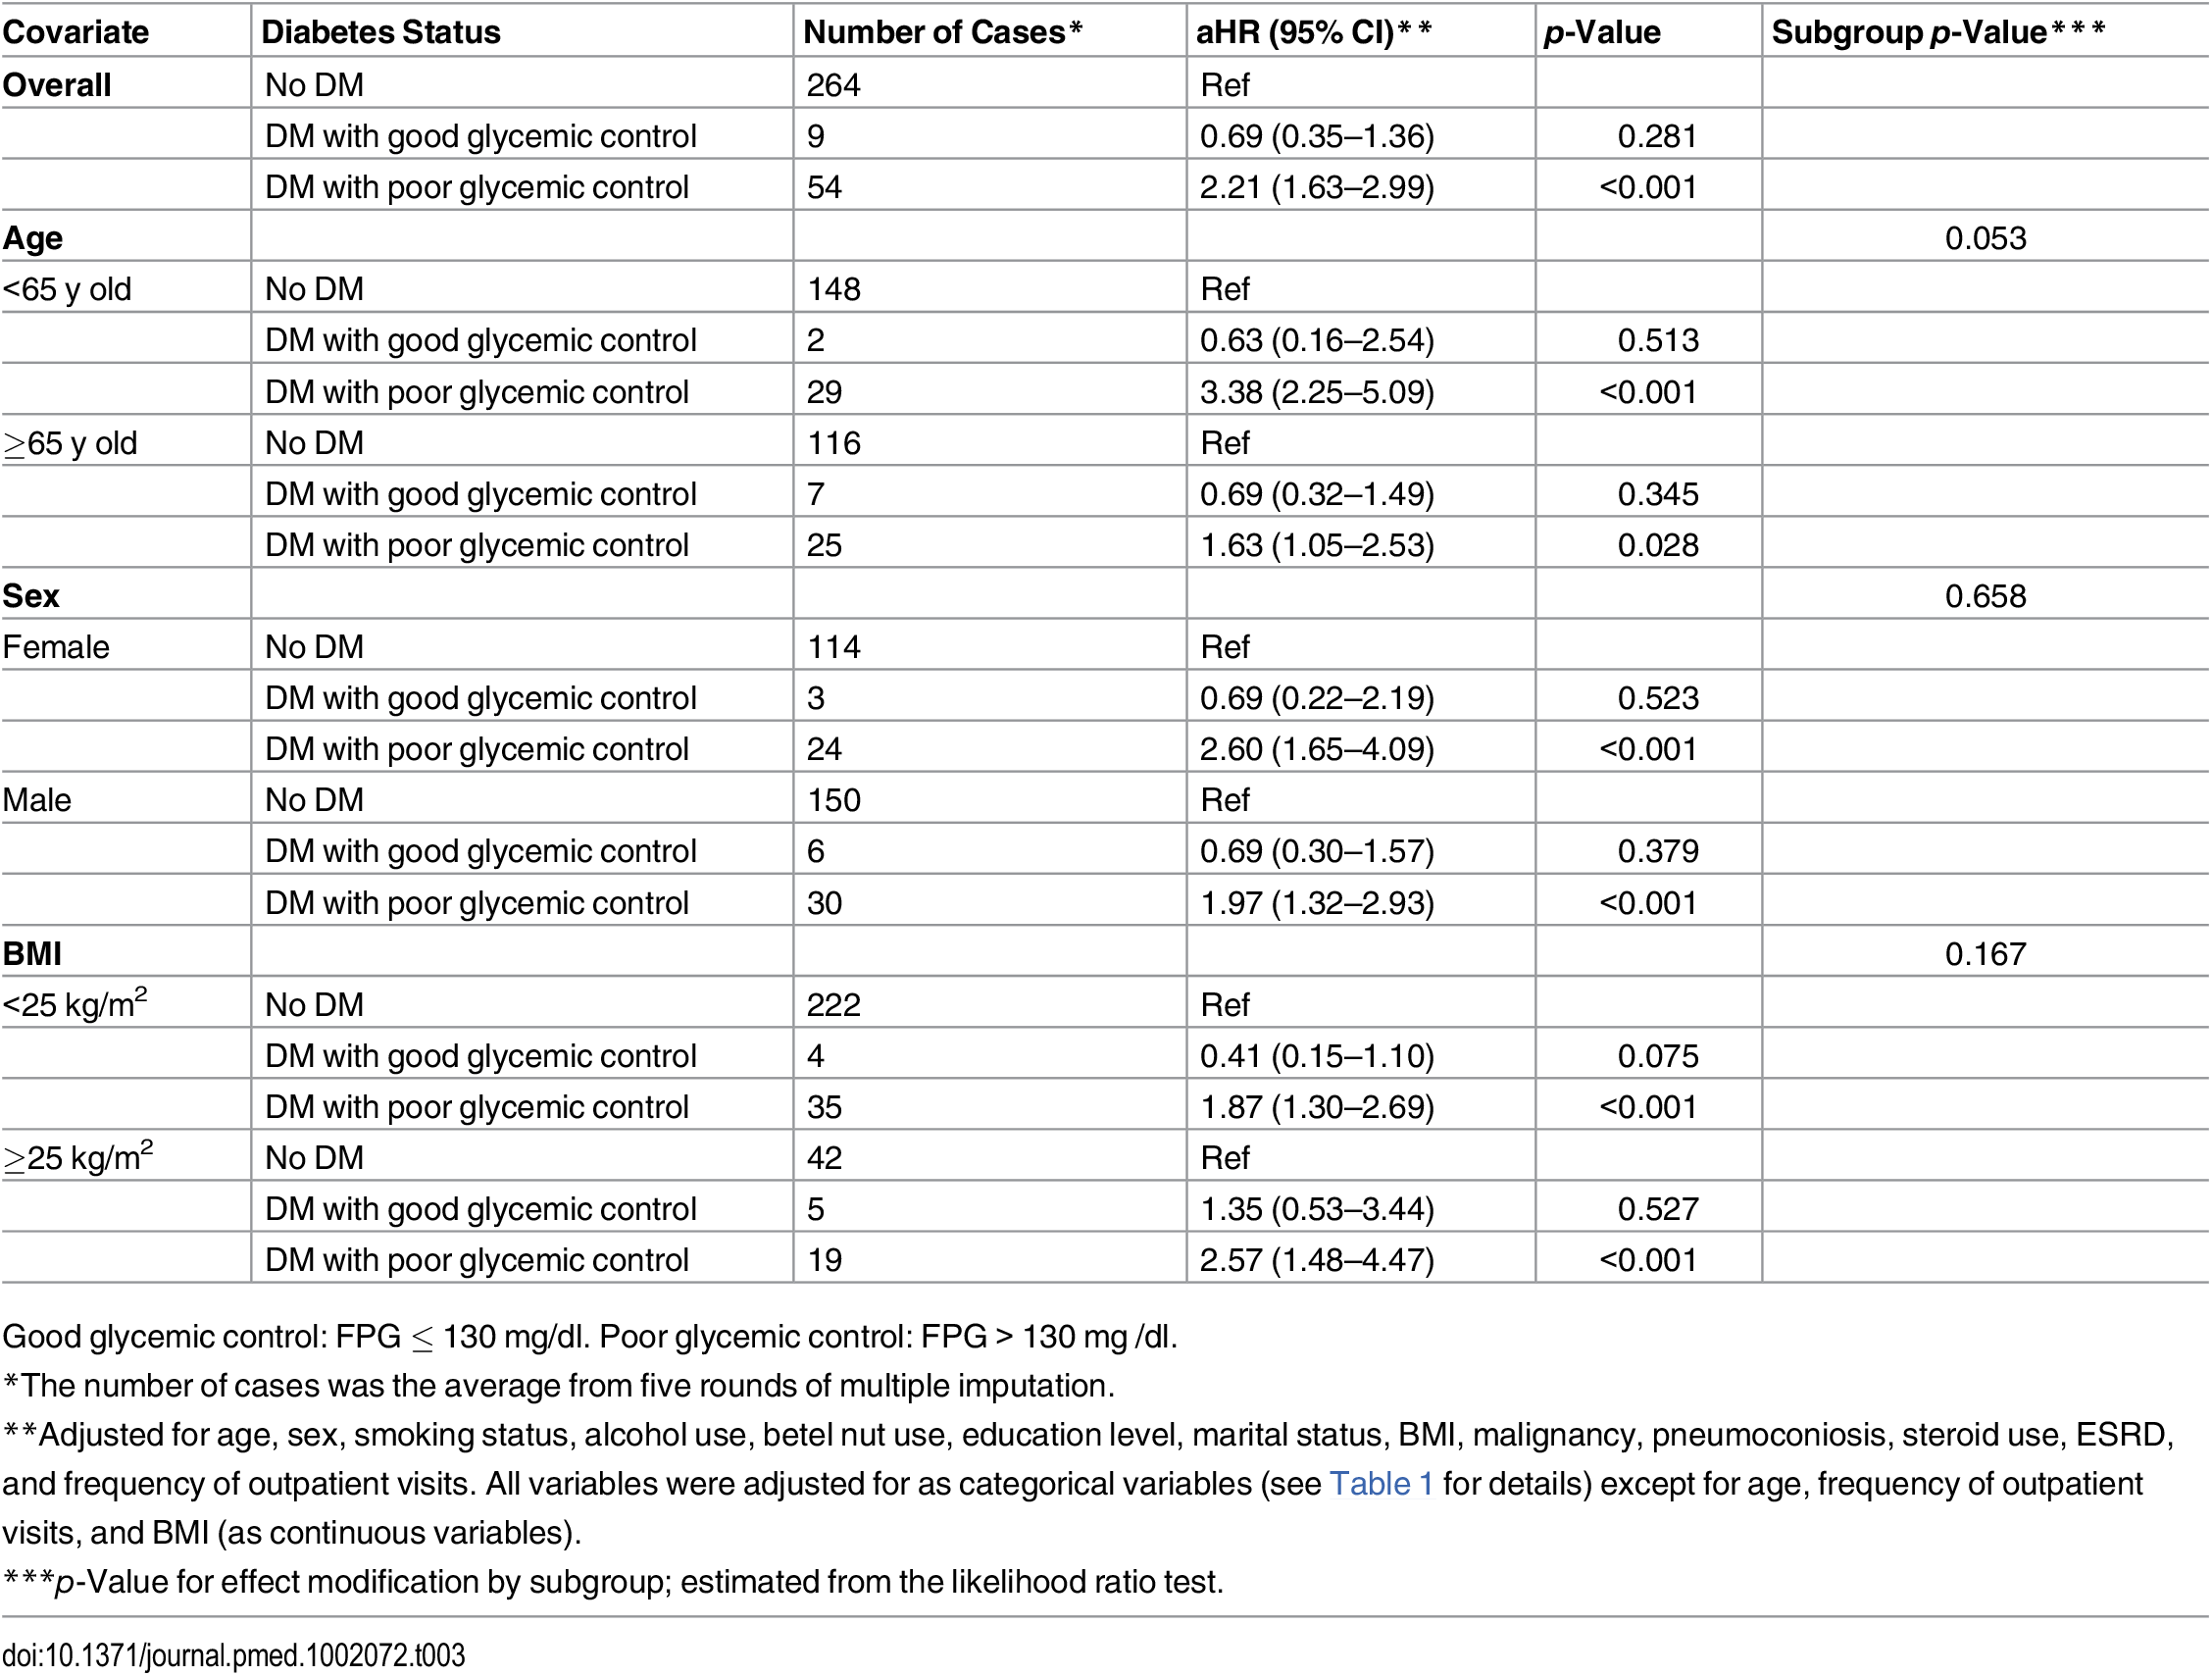 Subgroup analyses of the association between diabetes status and risk of tuberculosis.